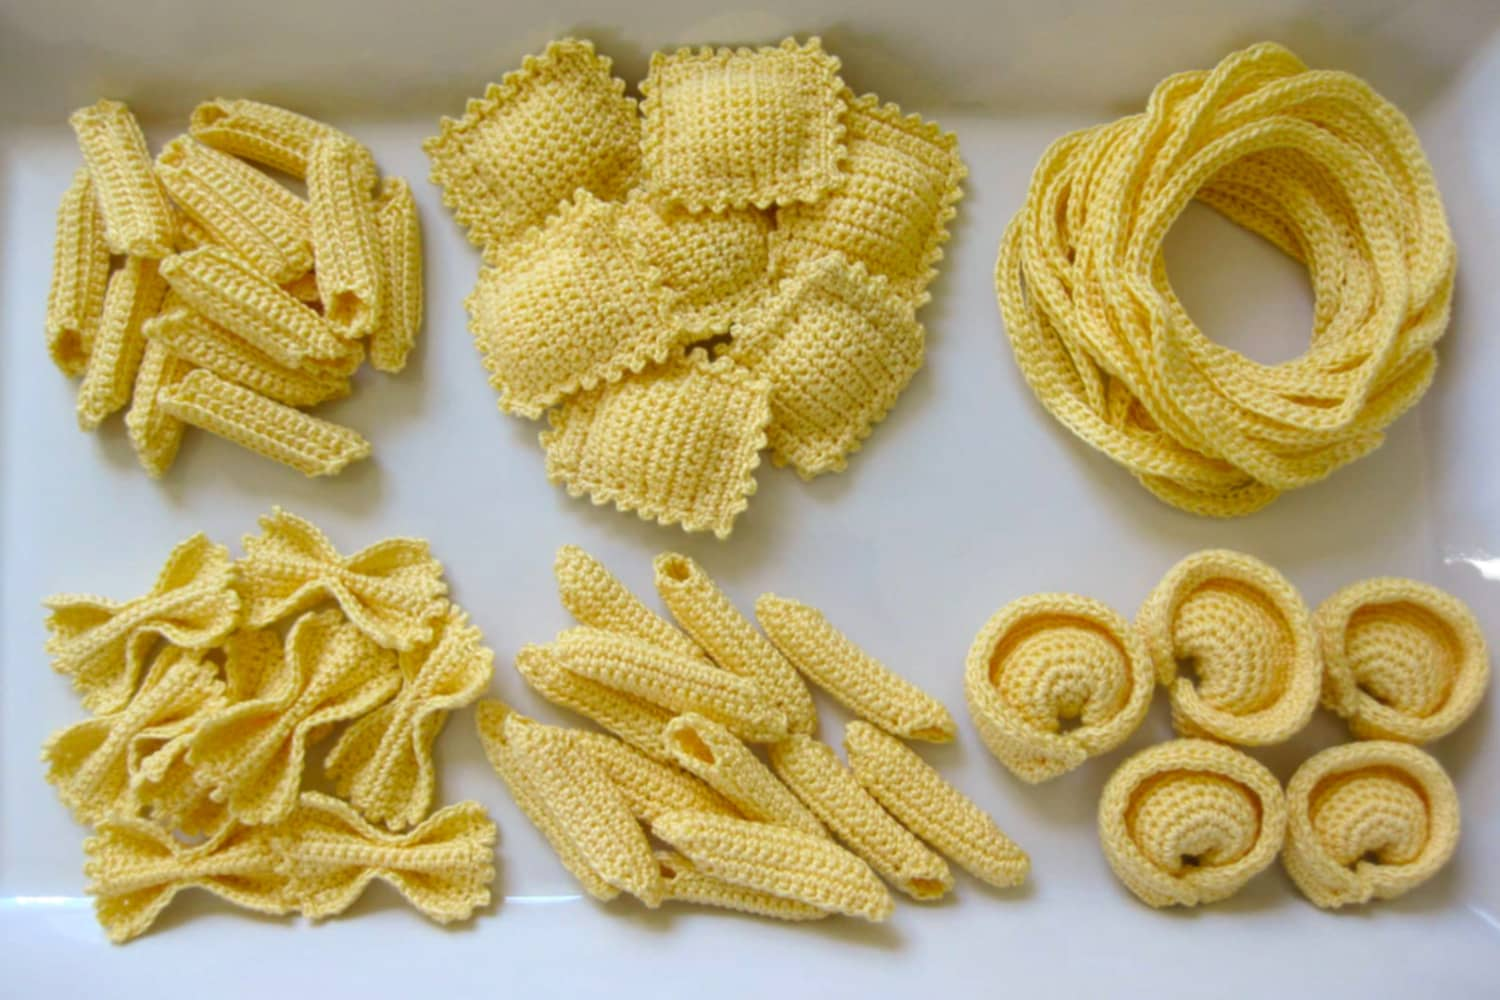 Pasta Lovers Can Now Crochet Their Own Noodles